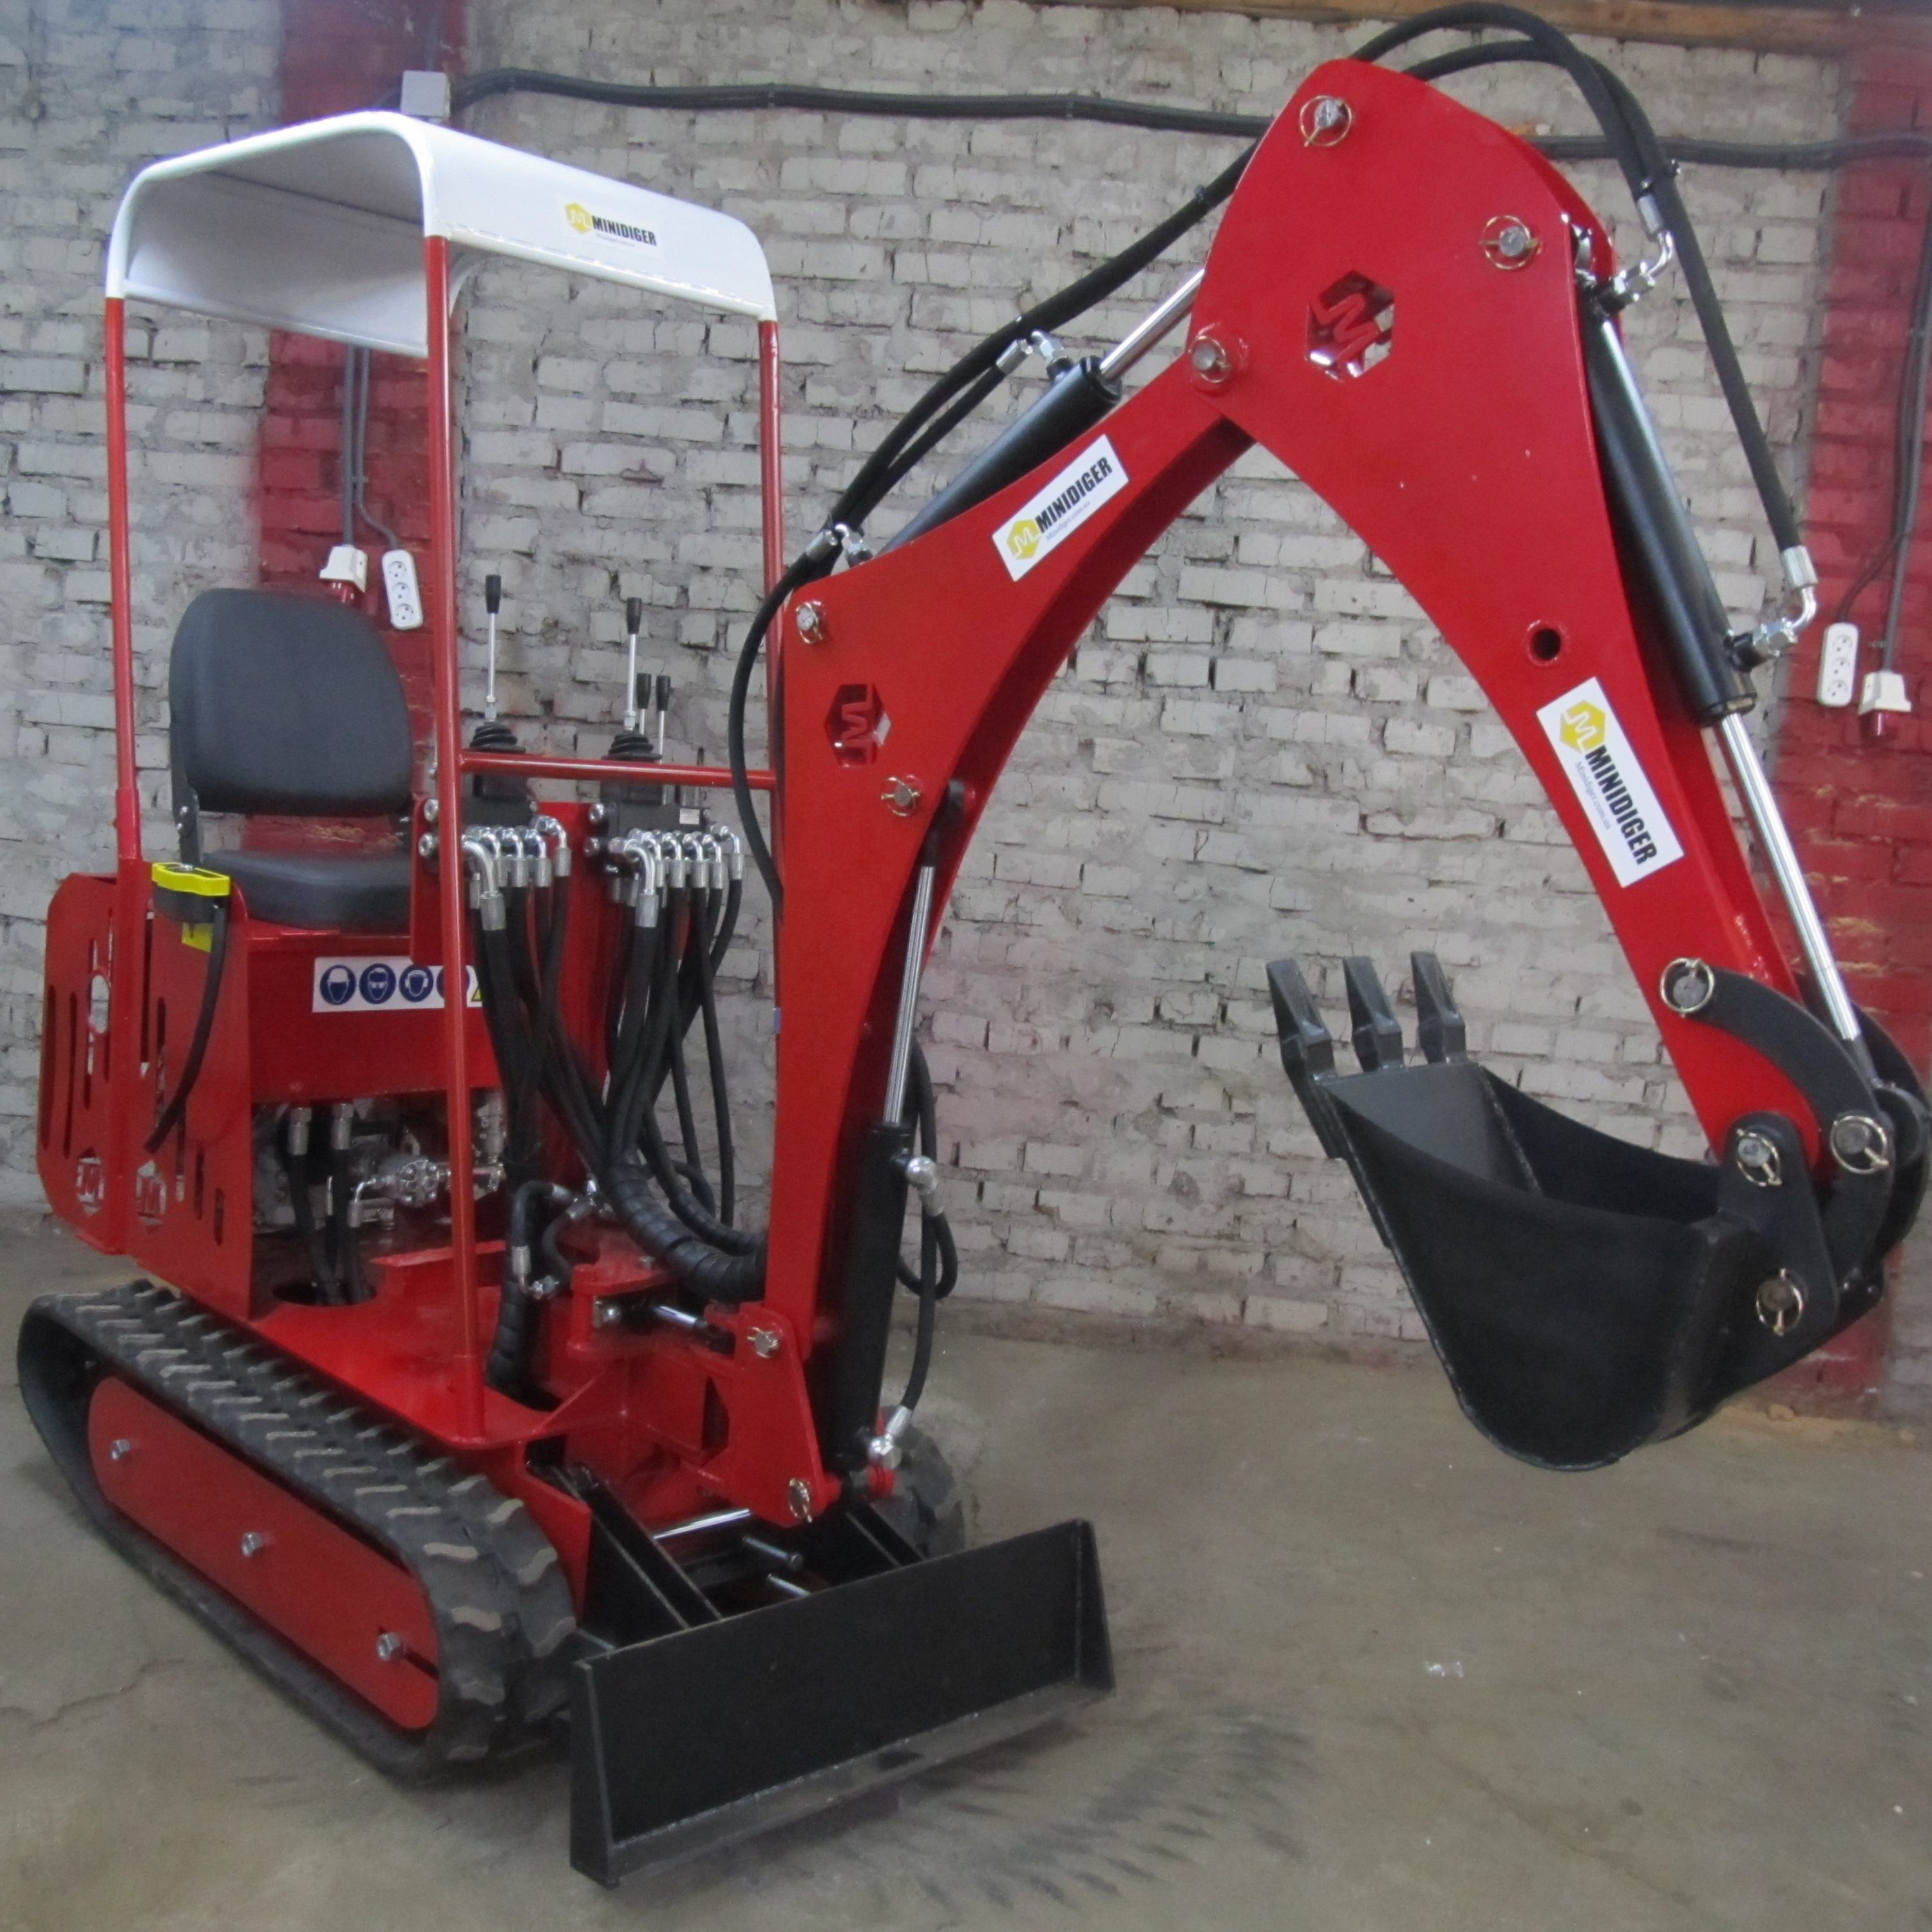 mini excavator MD-3 TM Minidiger Small excavator with huge capabilities